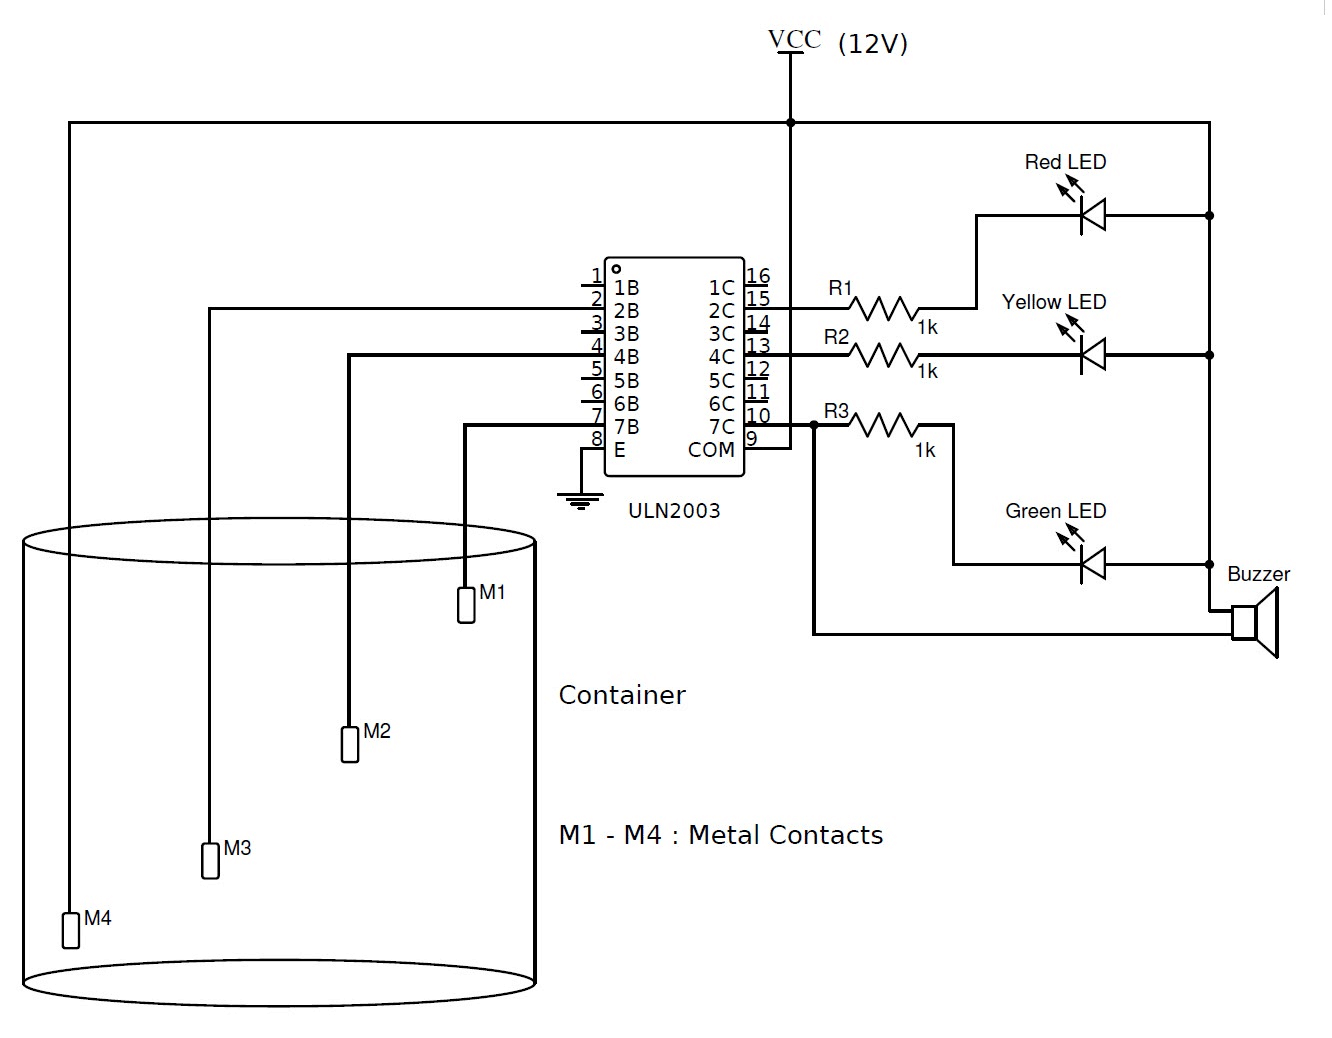 simple water level indicator with alarm 3 tested circuits in 2019 water level sensor detector monitor with alarm circuit schematic [ 1332 x 1038 Pixel ]